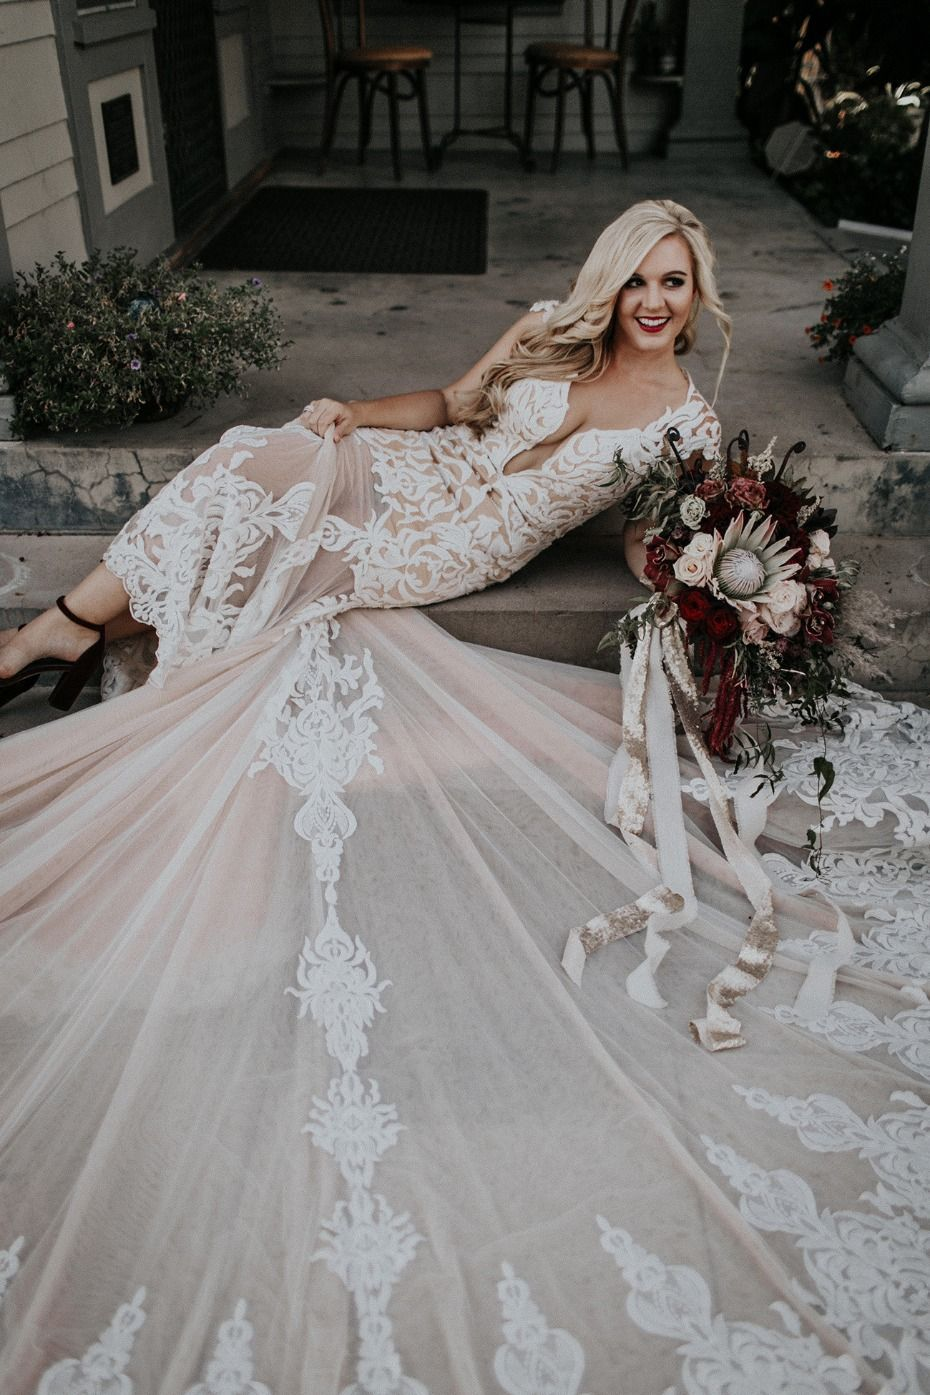 This dreamy vow renewal in california is goals wedding dress and